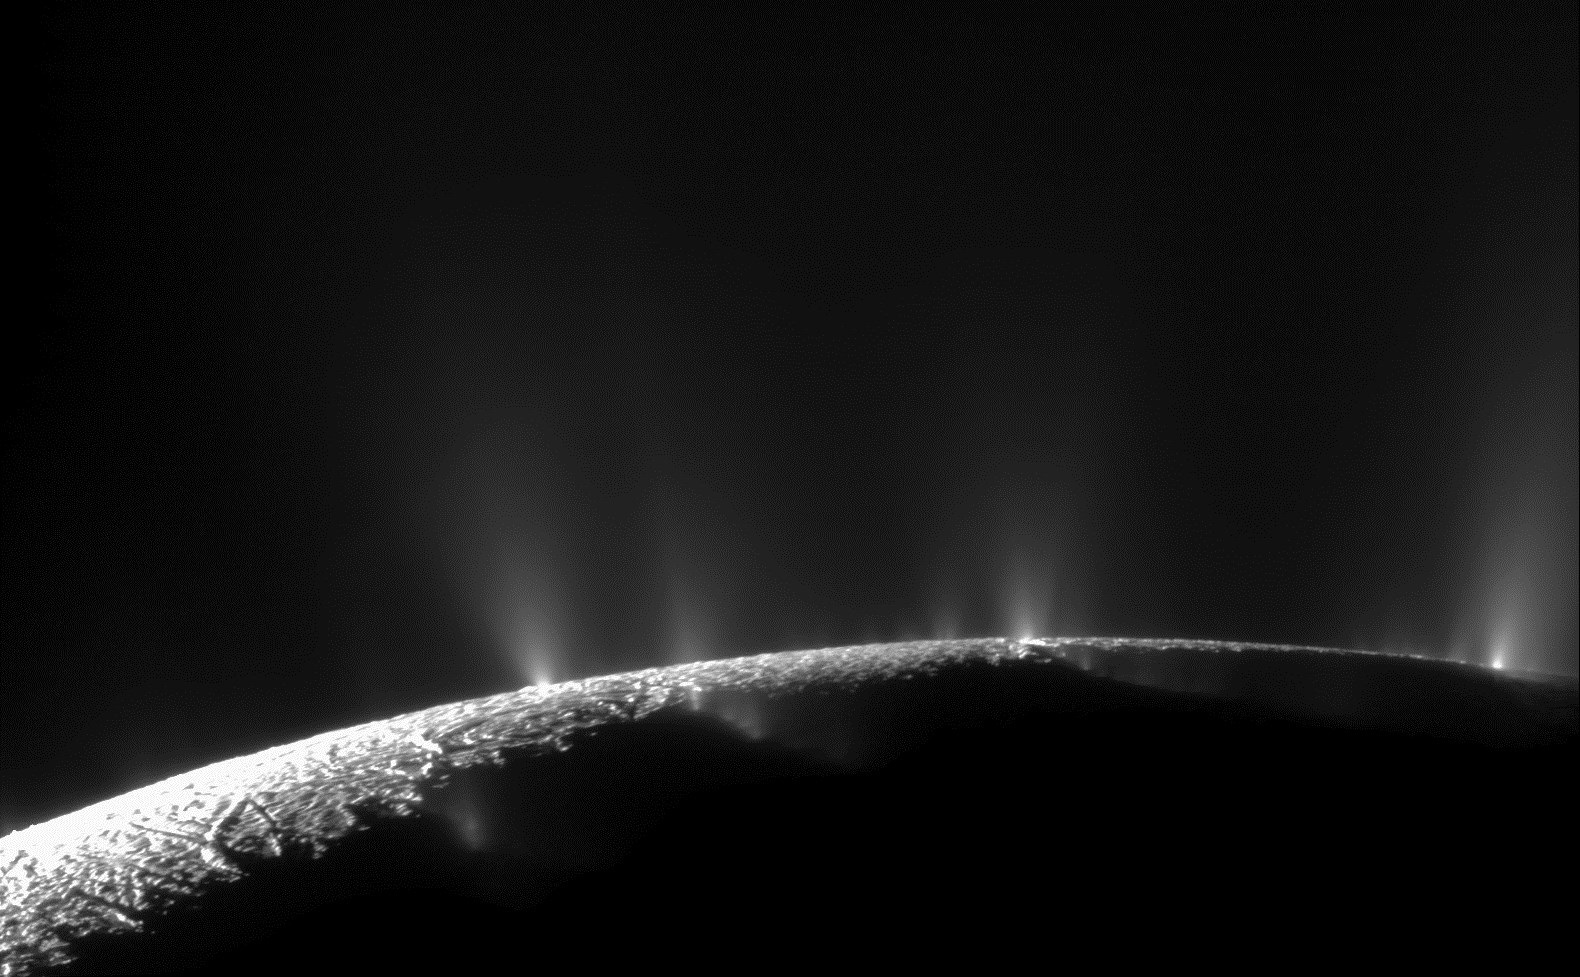 Methane on Saturns Moon Enceladus Could Be Sign of Life